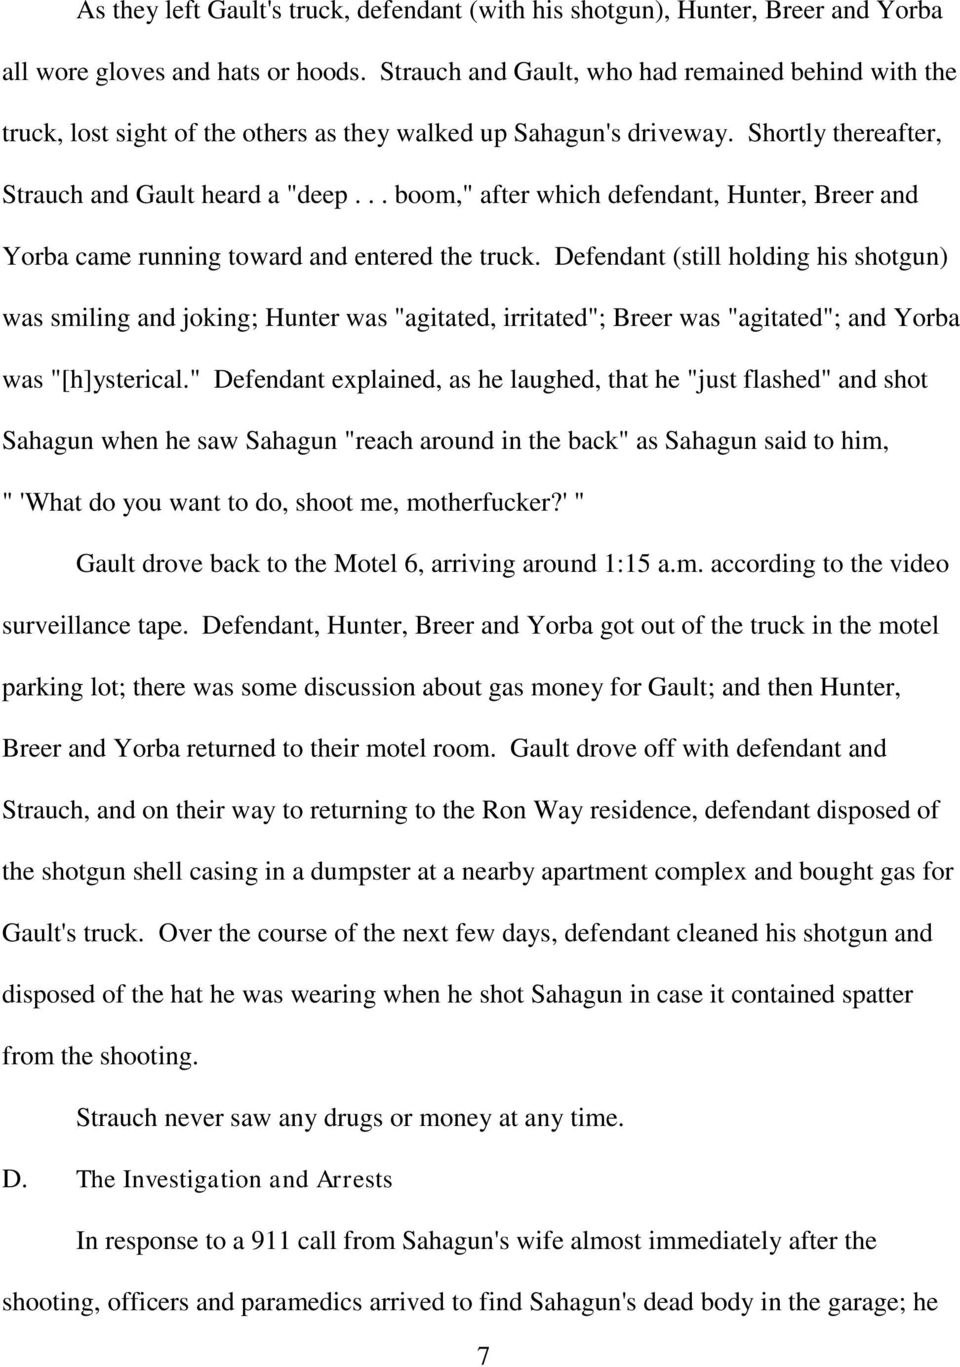 ".. boom,"" after which defendant, Hunter, Breer and Yorba came running toward and entered the truck."